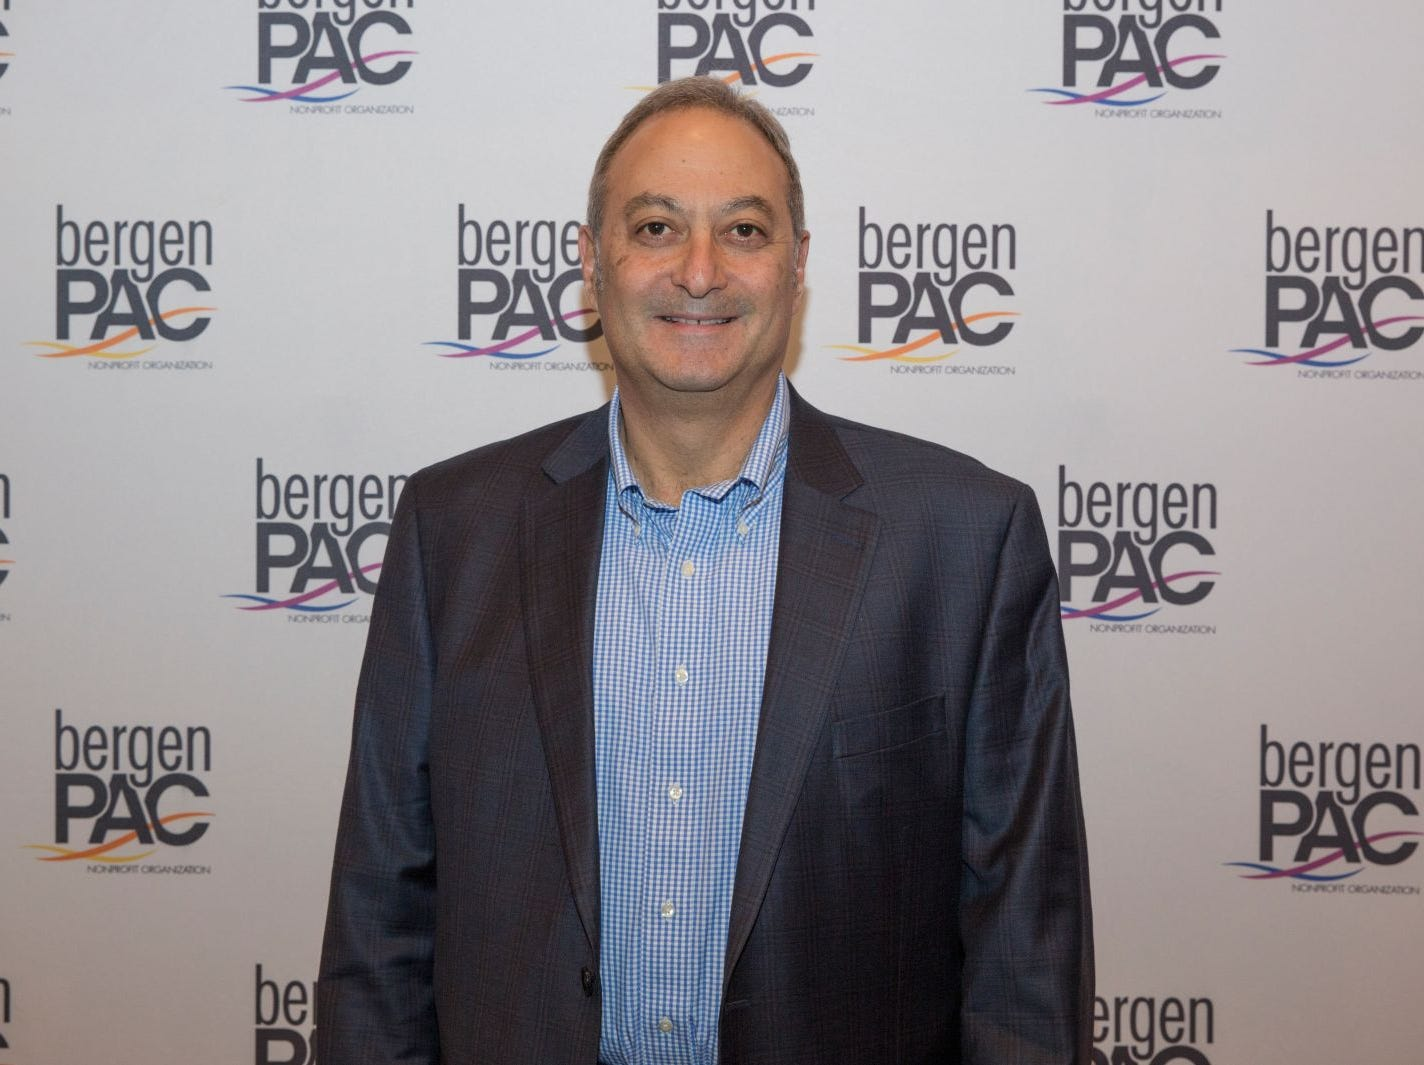 Fernado Garip. BergenPAC held its annual fall gala featuring John Fogerty in Englewood. This year's honoree was Fernando Garip, from Wilmington Trust and M&T Bank. 11/08/2018